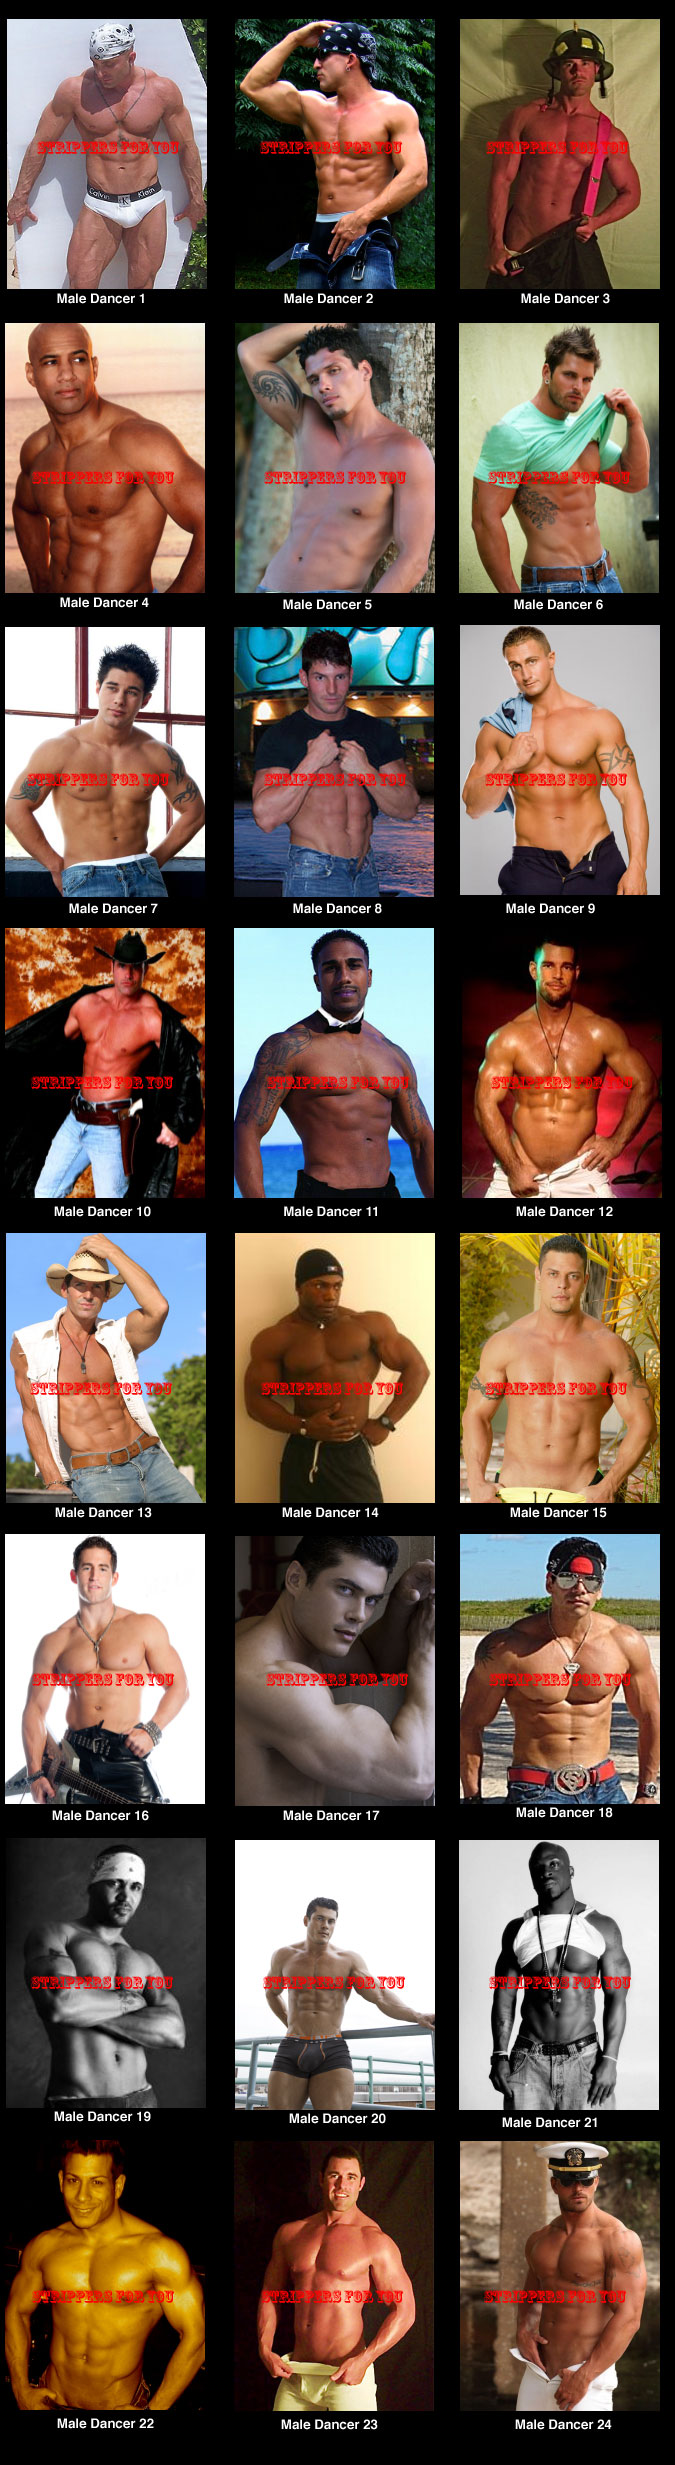 Detroit male strippers